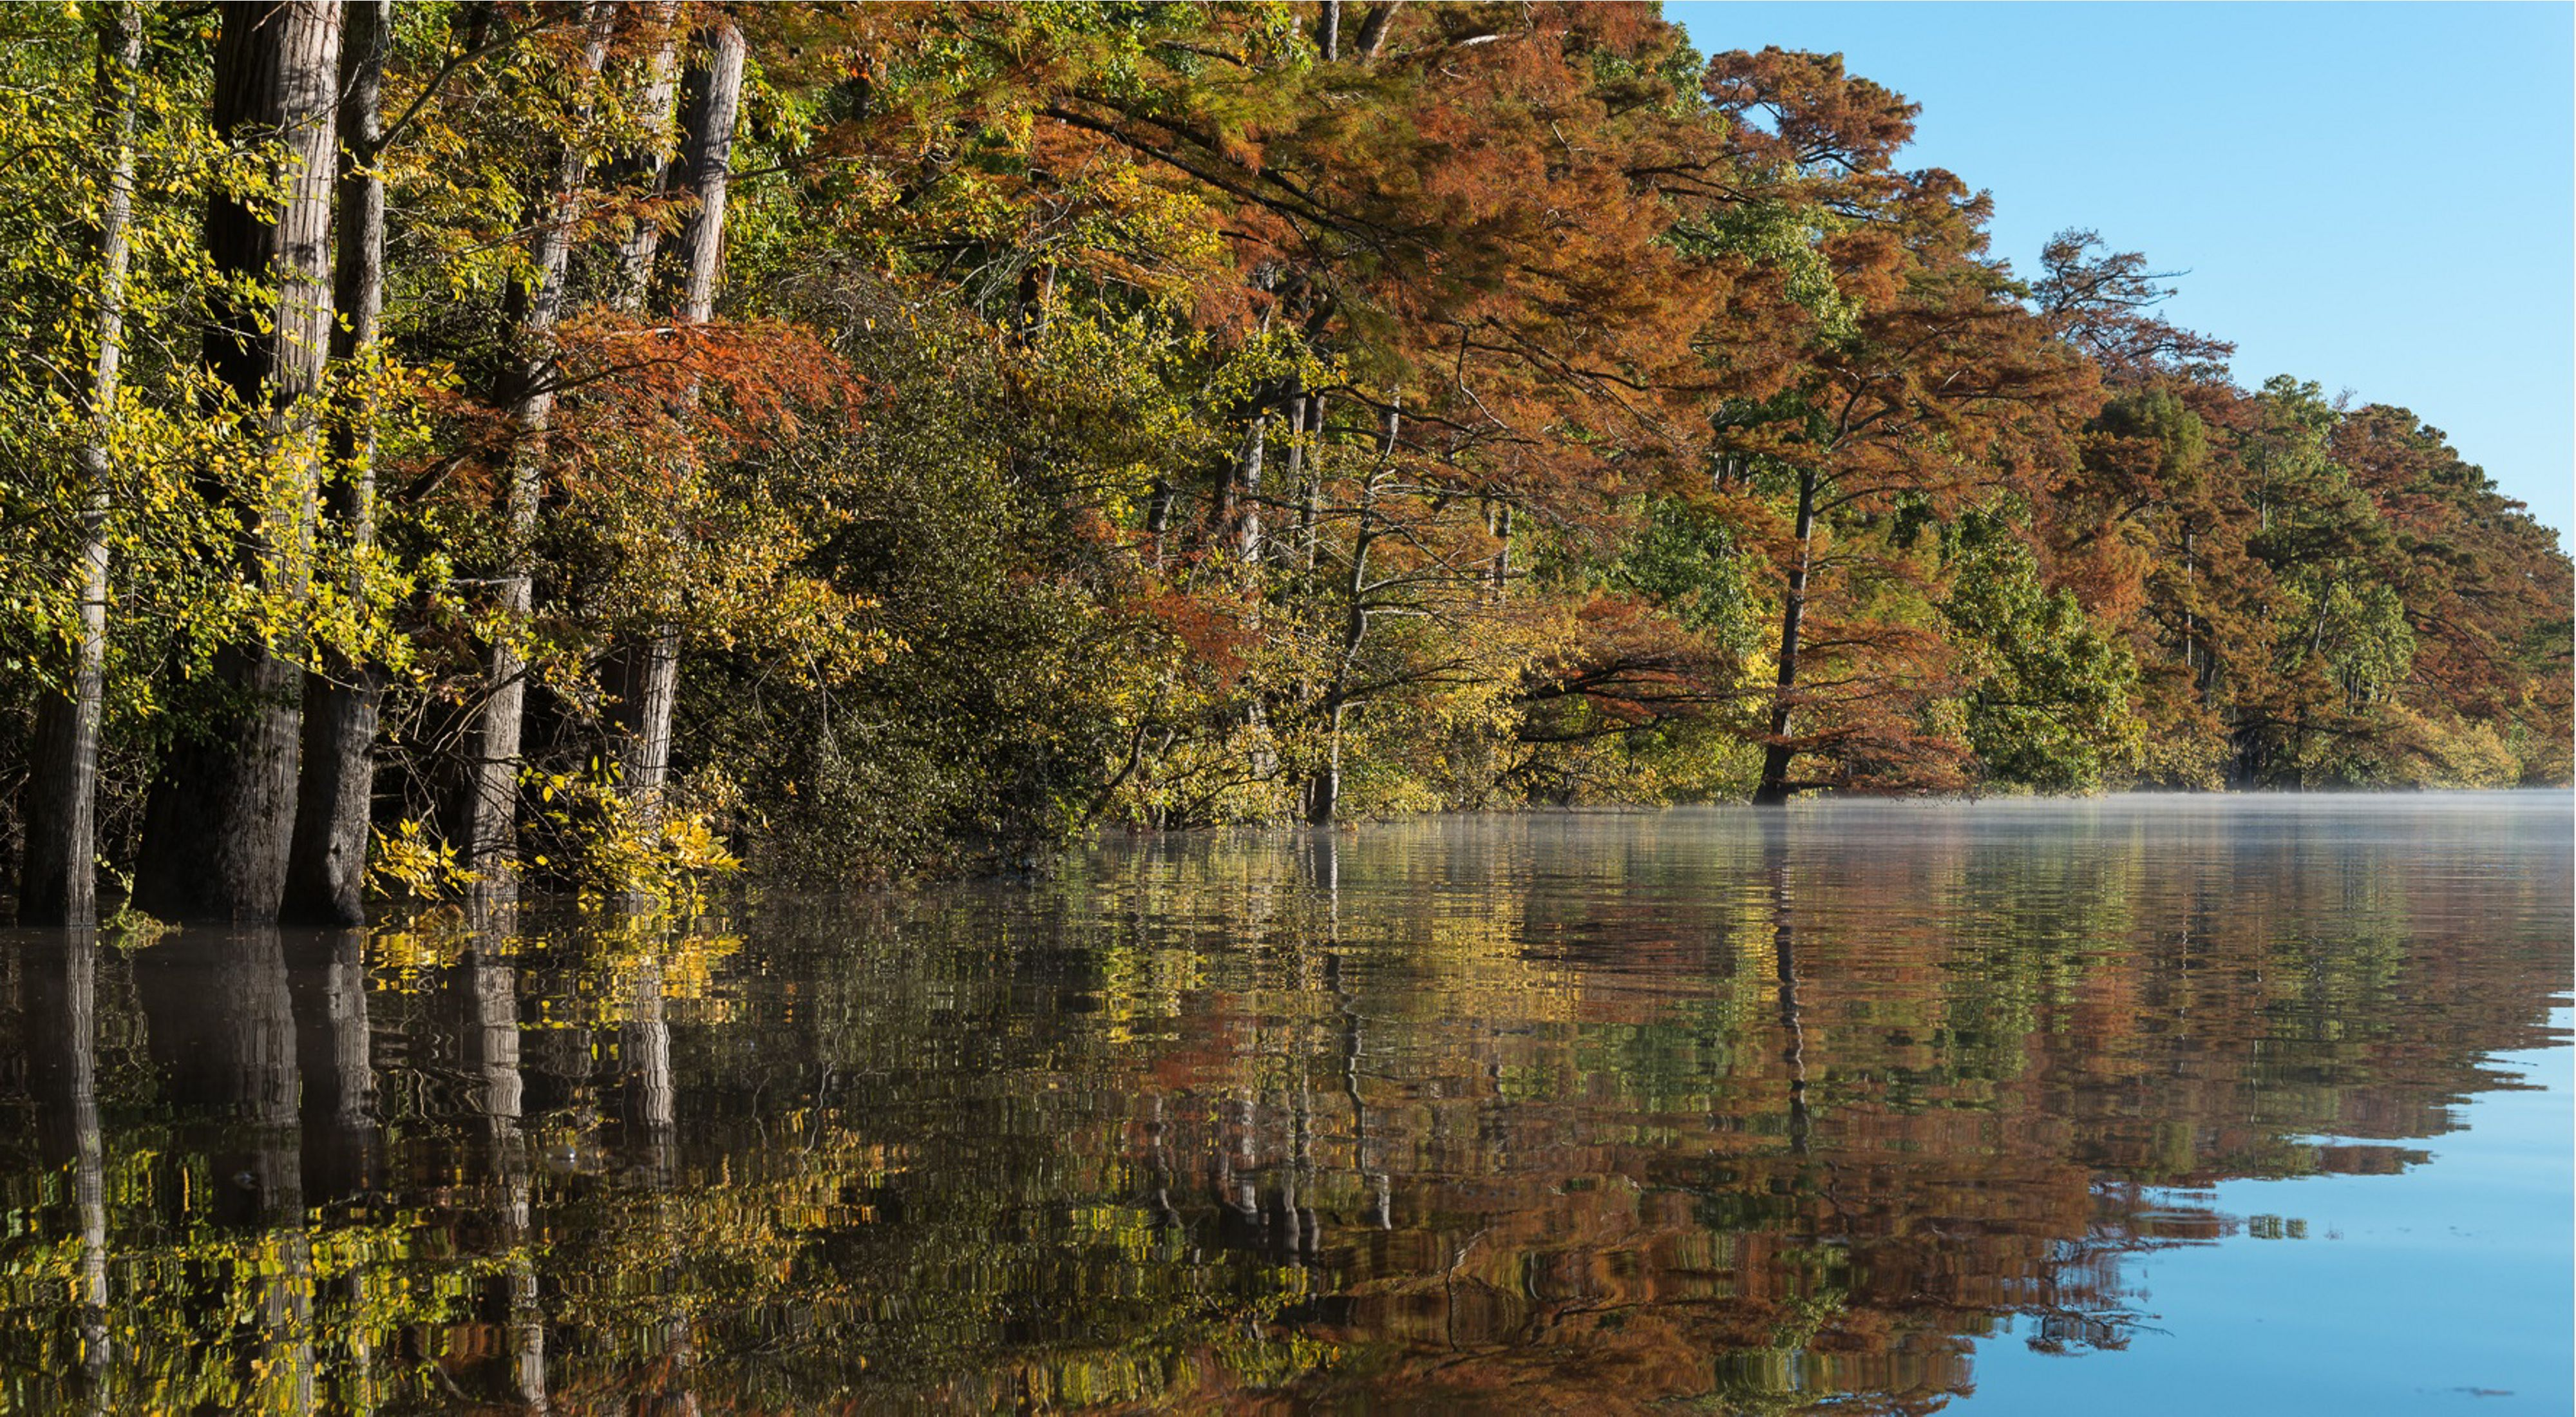 Fall colors brighten the banks of Bayou Dorcheat, one of Louisiana's designated scenic rivers